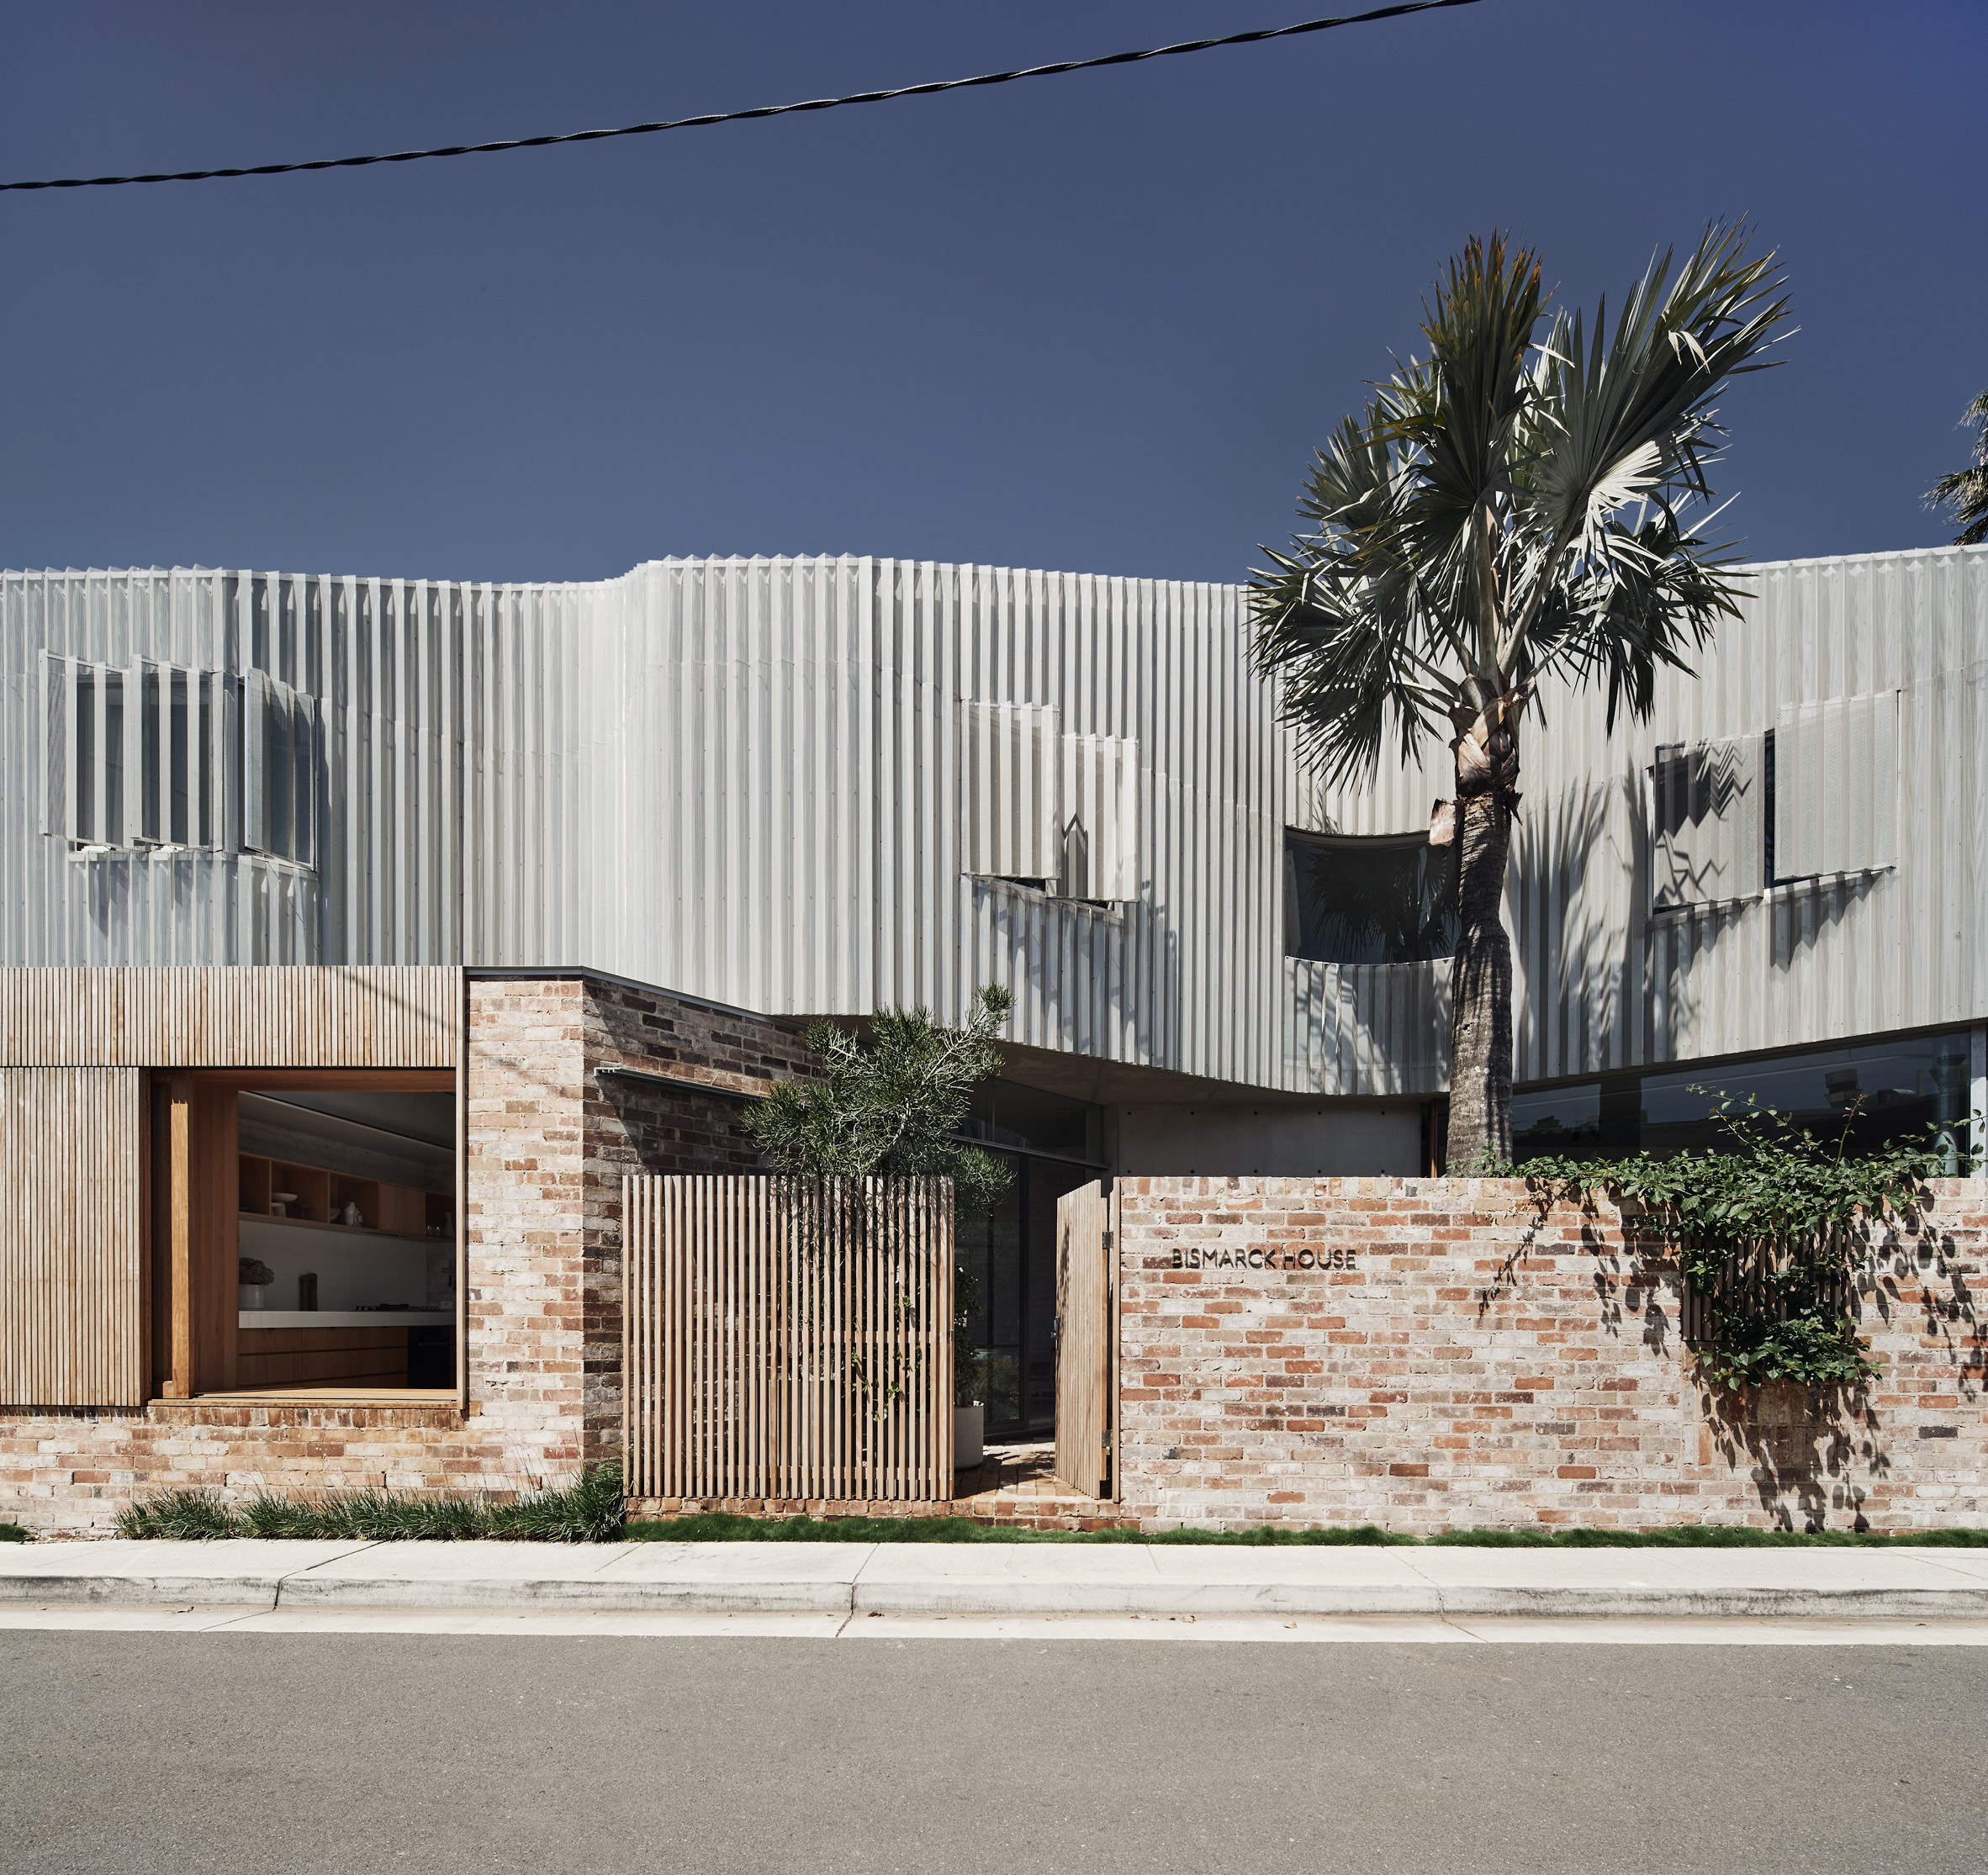 Metal facade of Bismarck House by Andrew Burges Architects in Bondi, Sydney